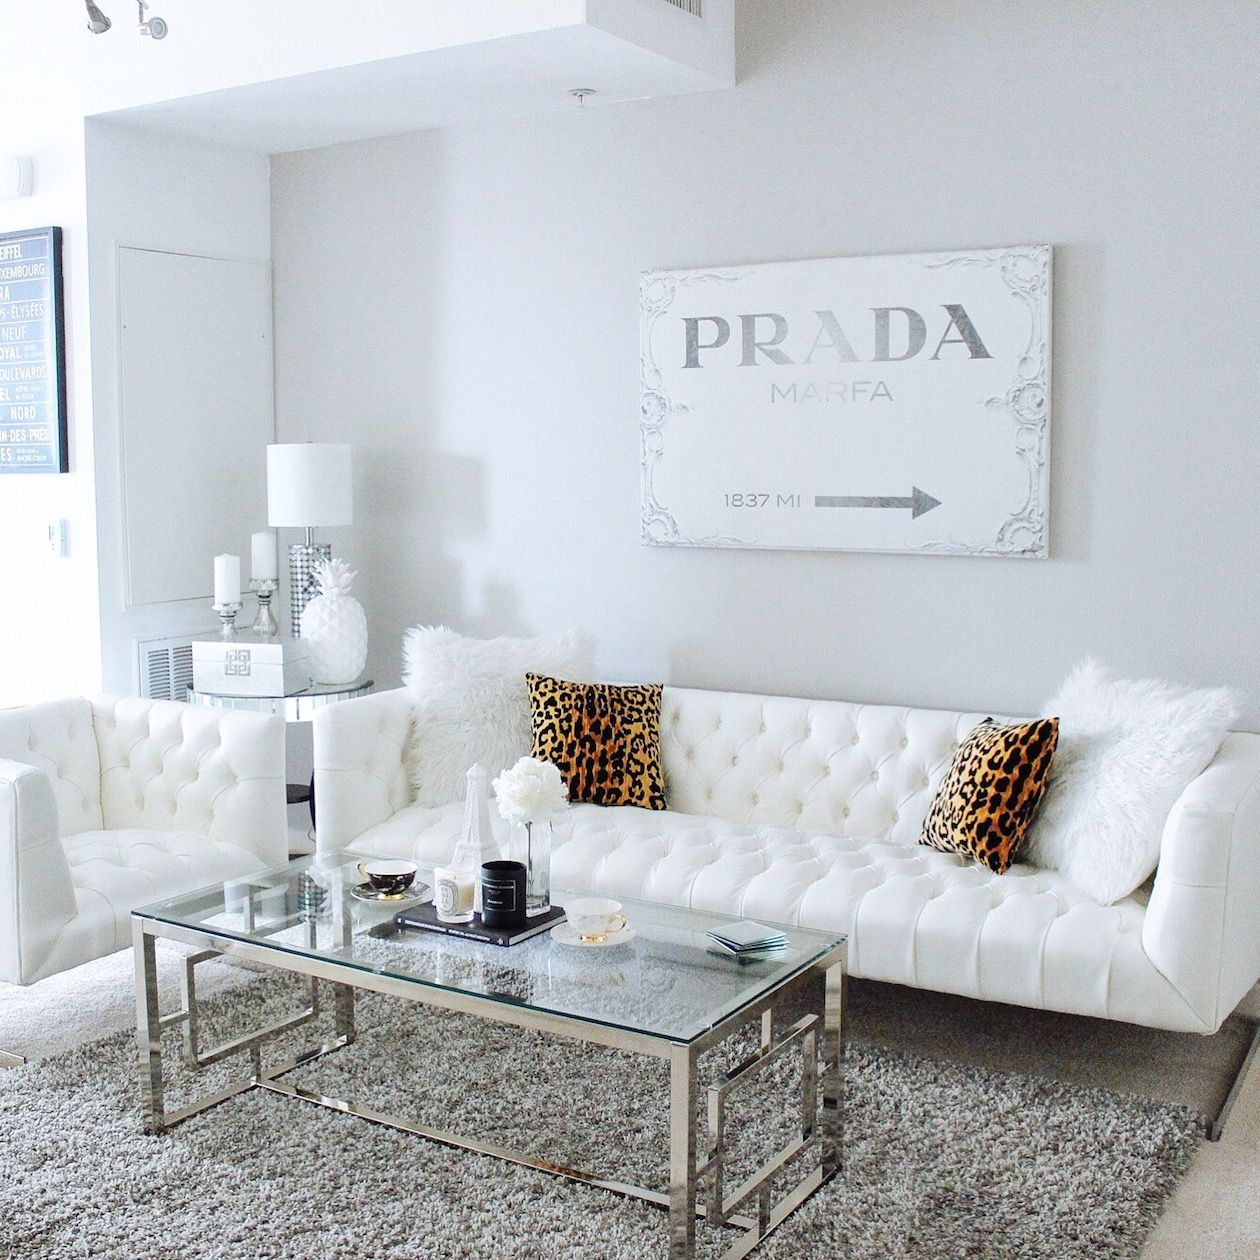 20+ Fresh and Beauty White Living Room Ideas | Cozy living rooms ...